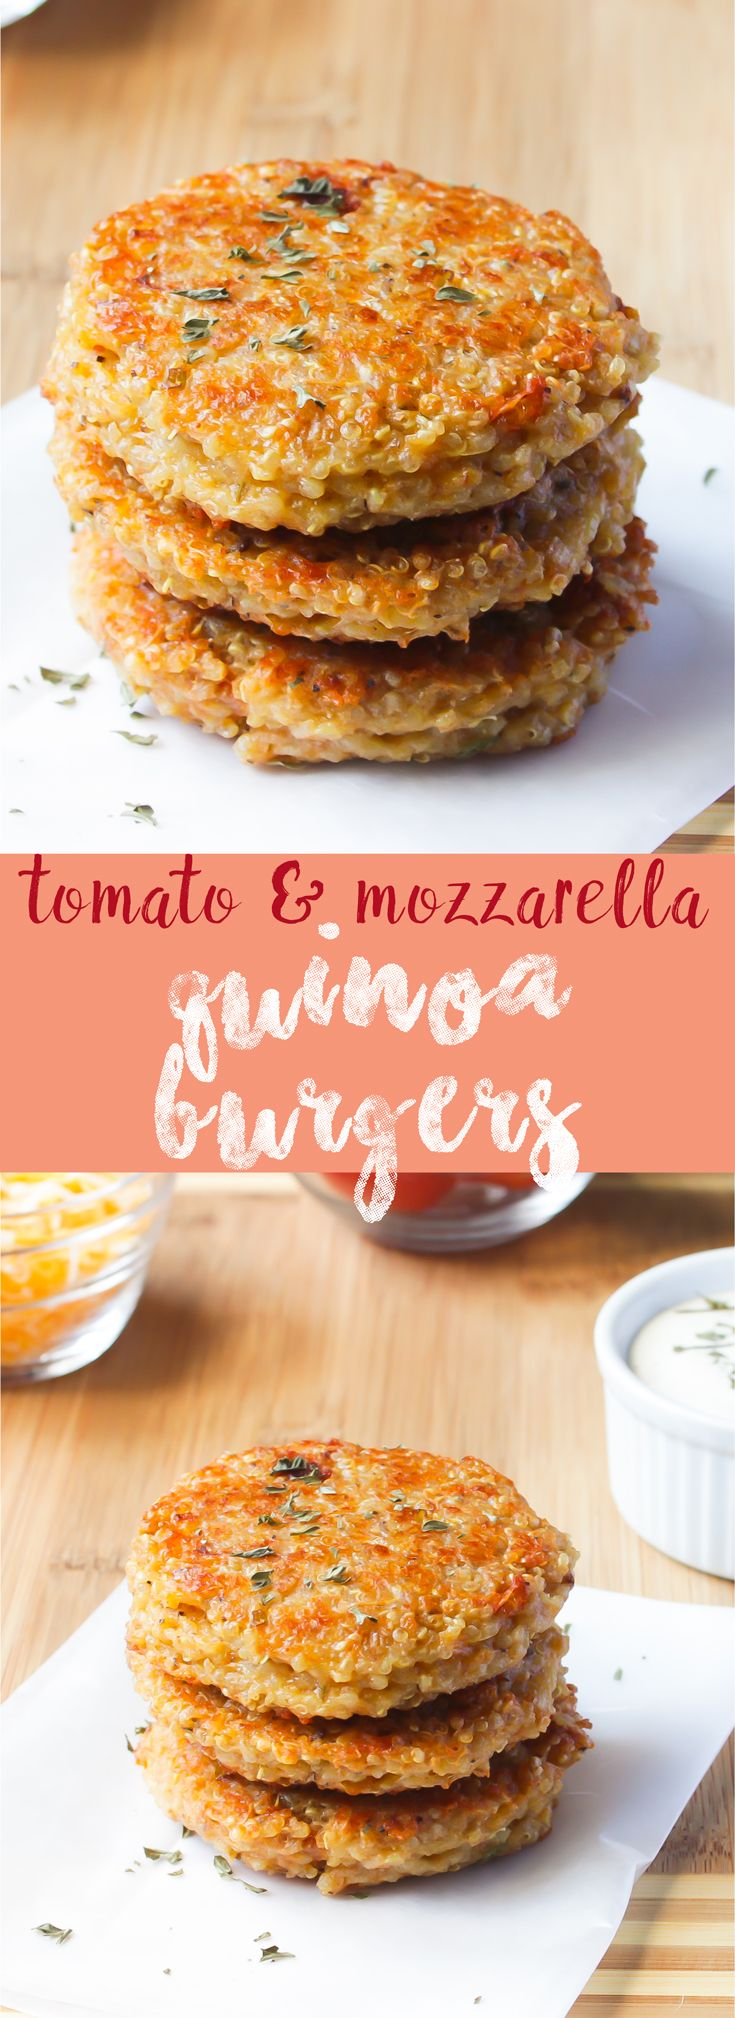 25 best ideas about tomato mozzarella sandwich no pinterest queijos grelhados - Make sun dried tomatoes explosion flavor ...